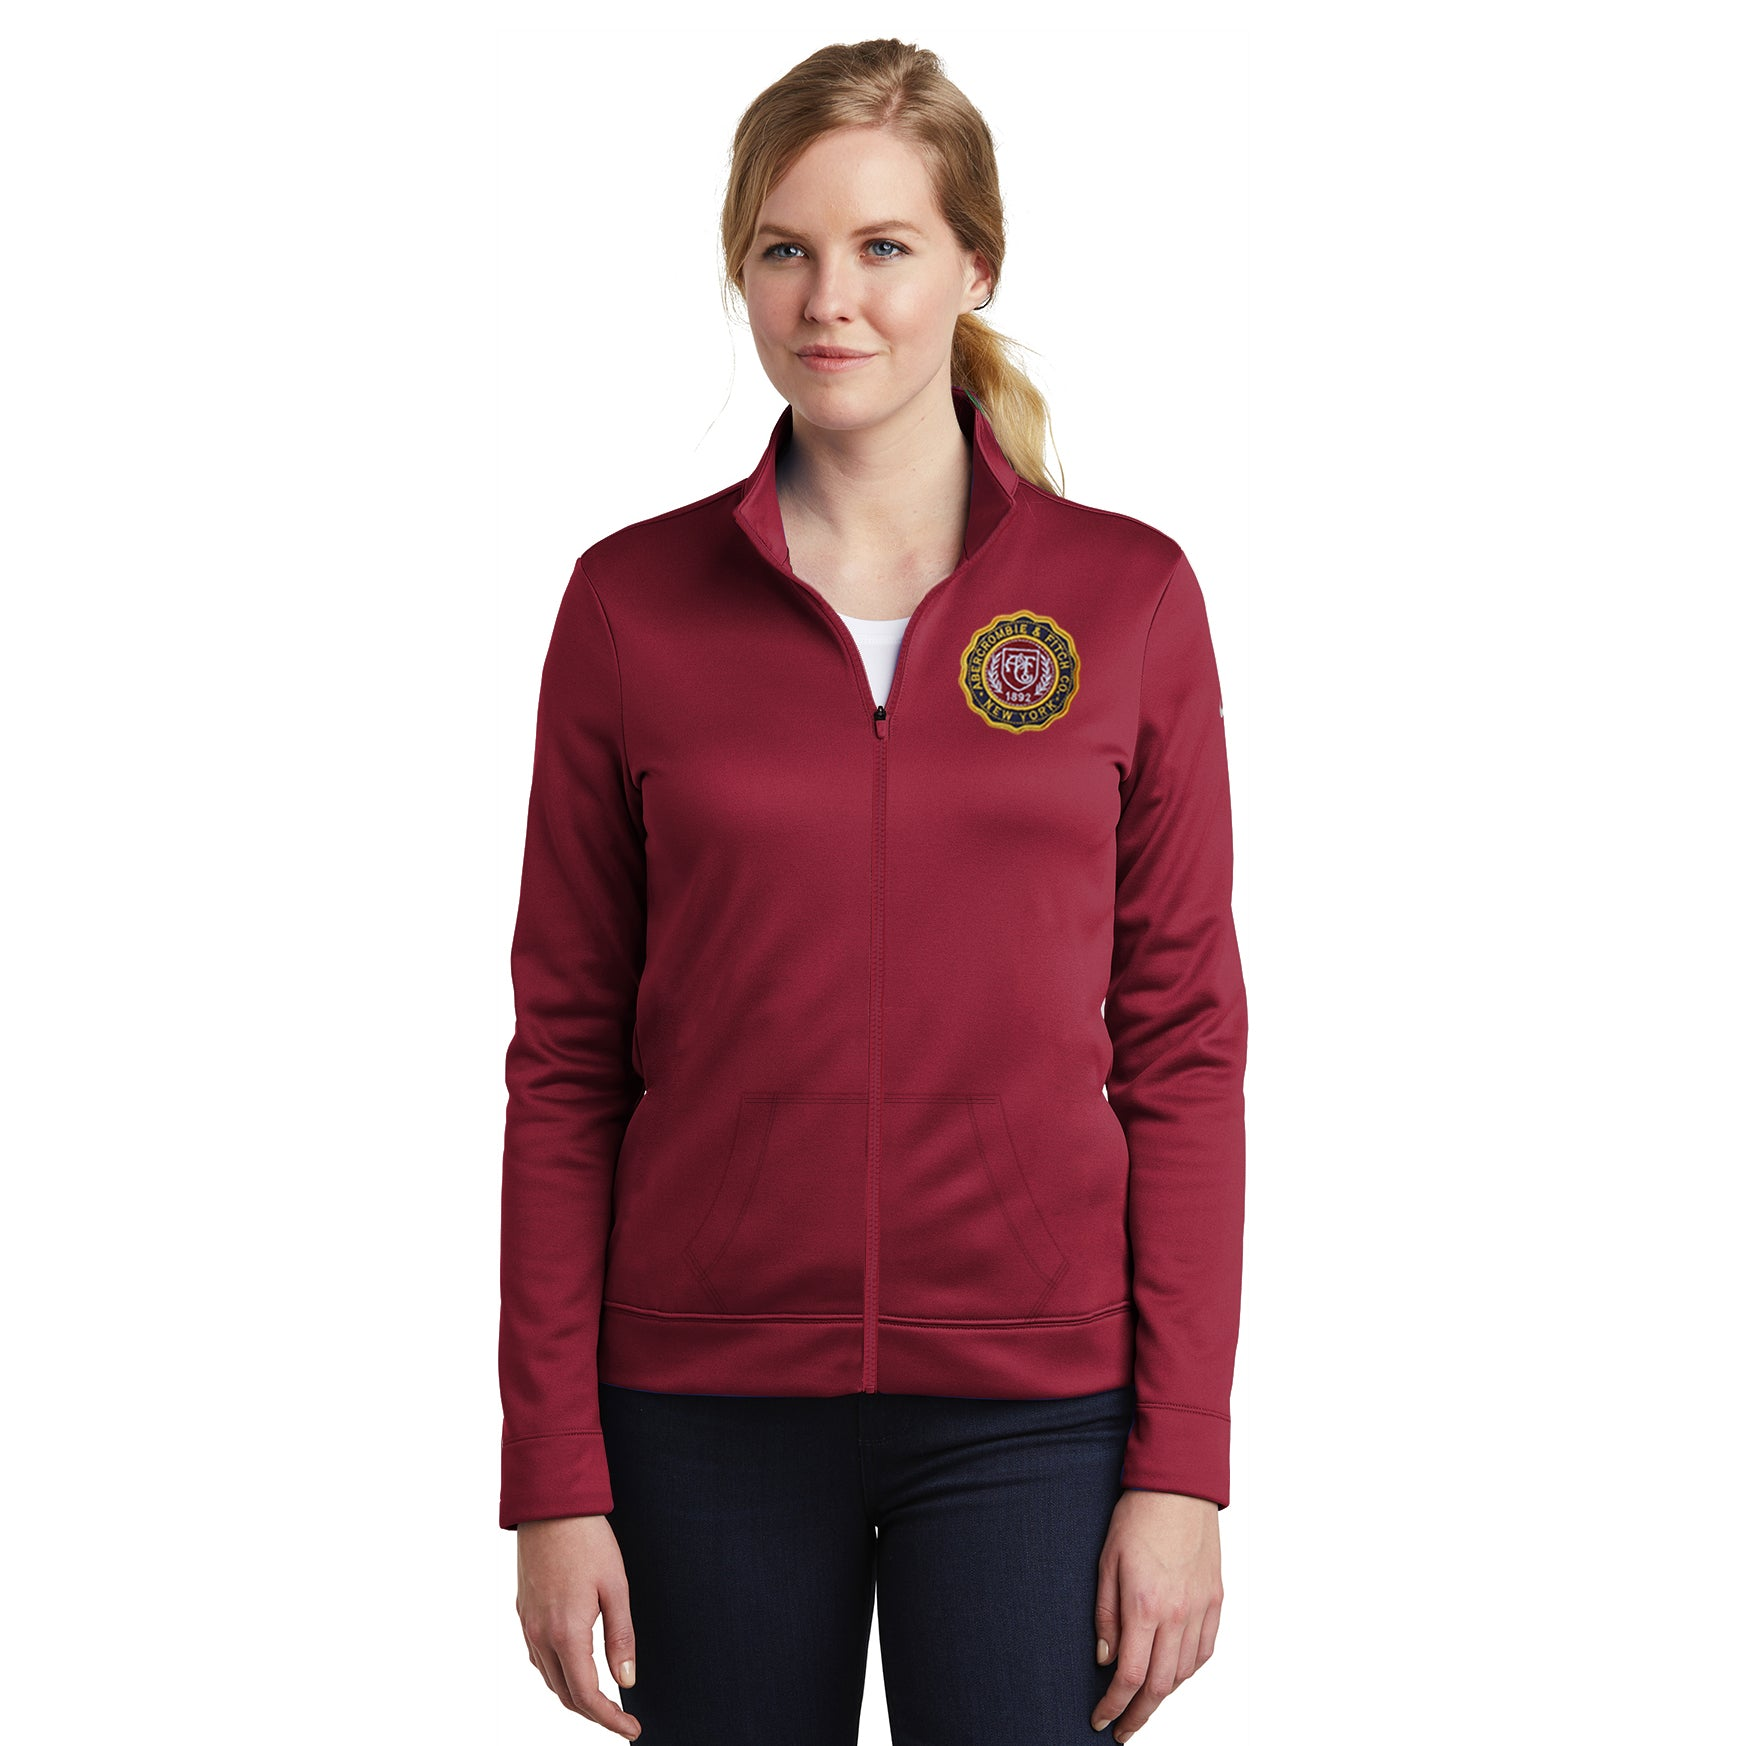 A&F Fleece Zipper Mock Neck Navy & Maroon Embroidery For Ladies-Dark Red-BE7517